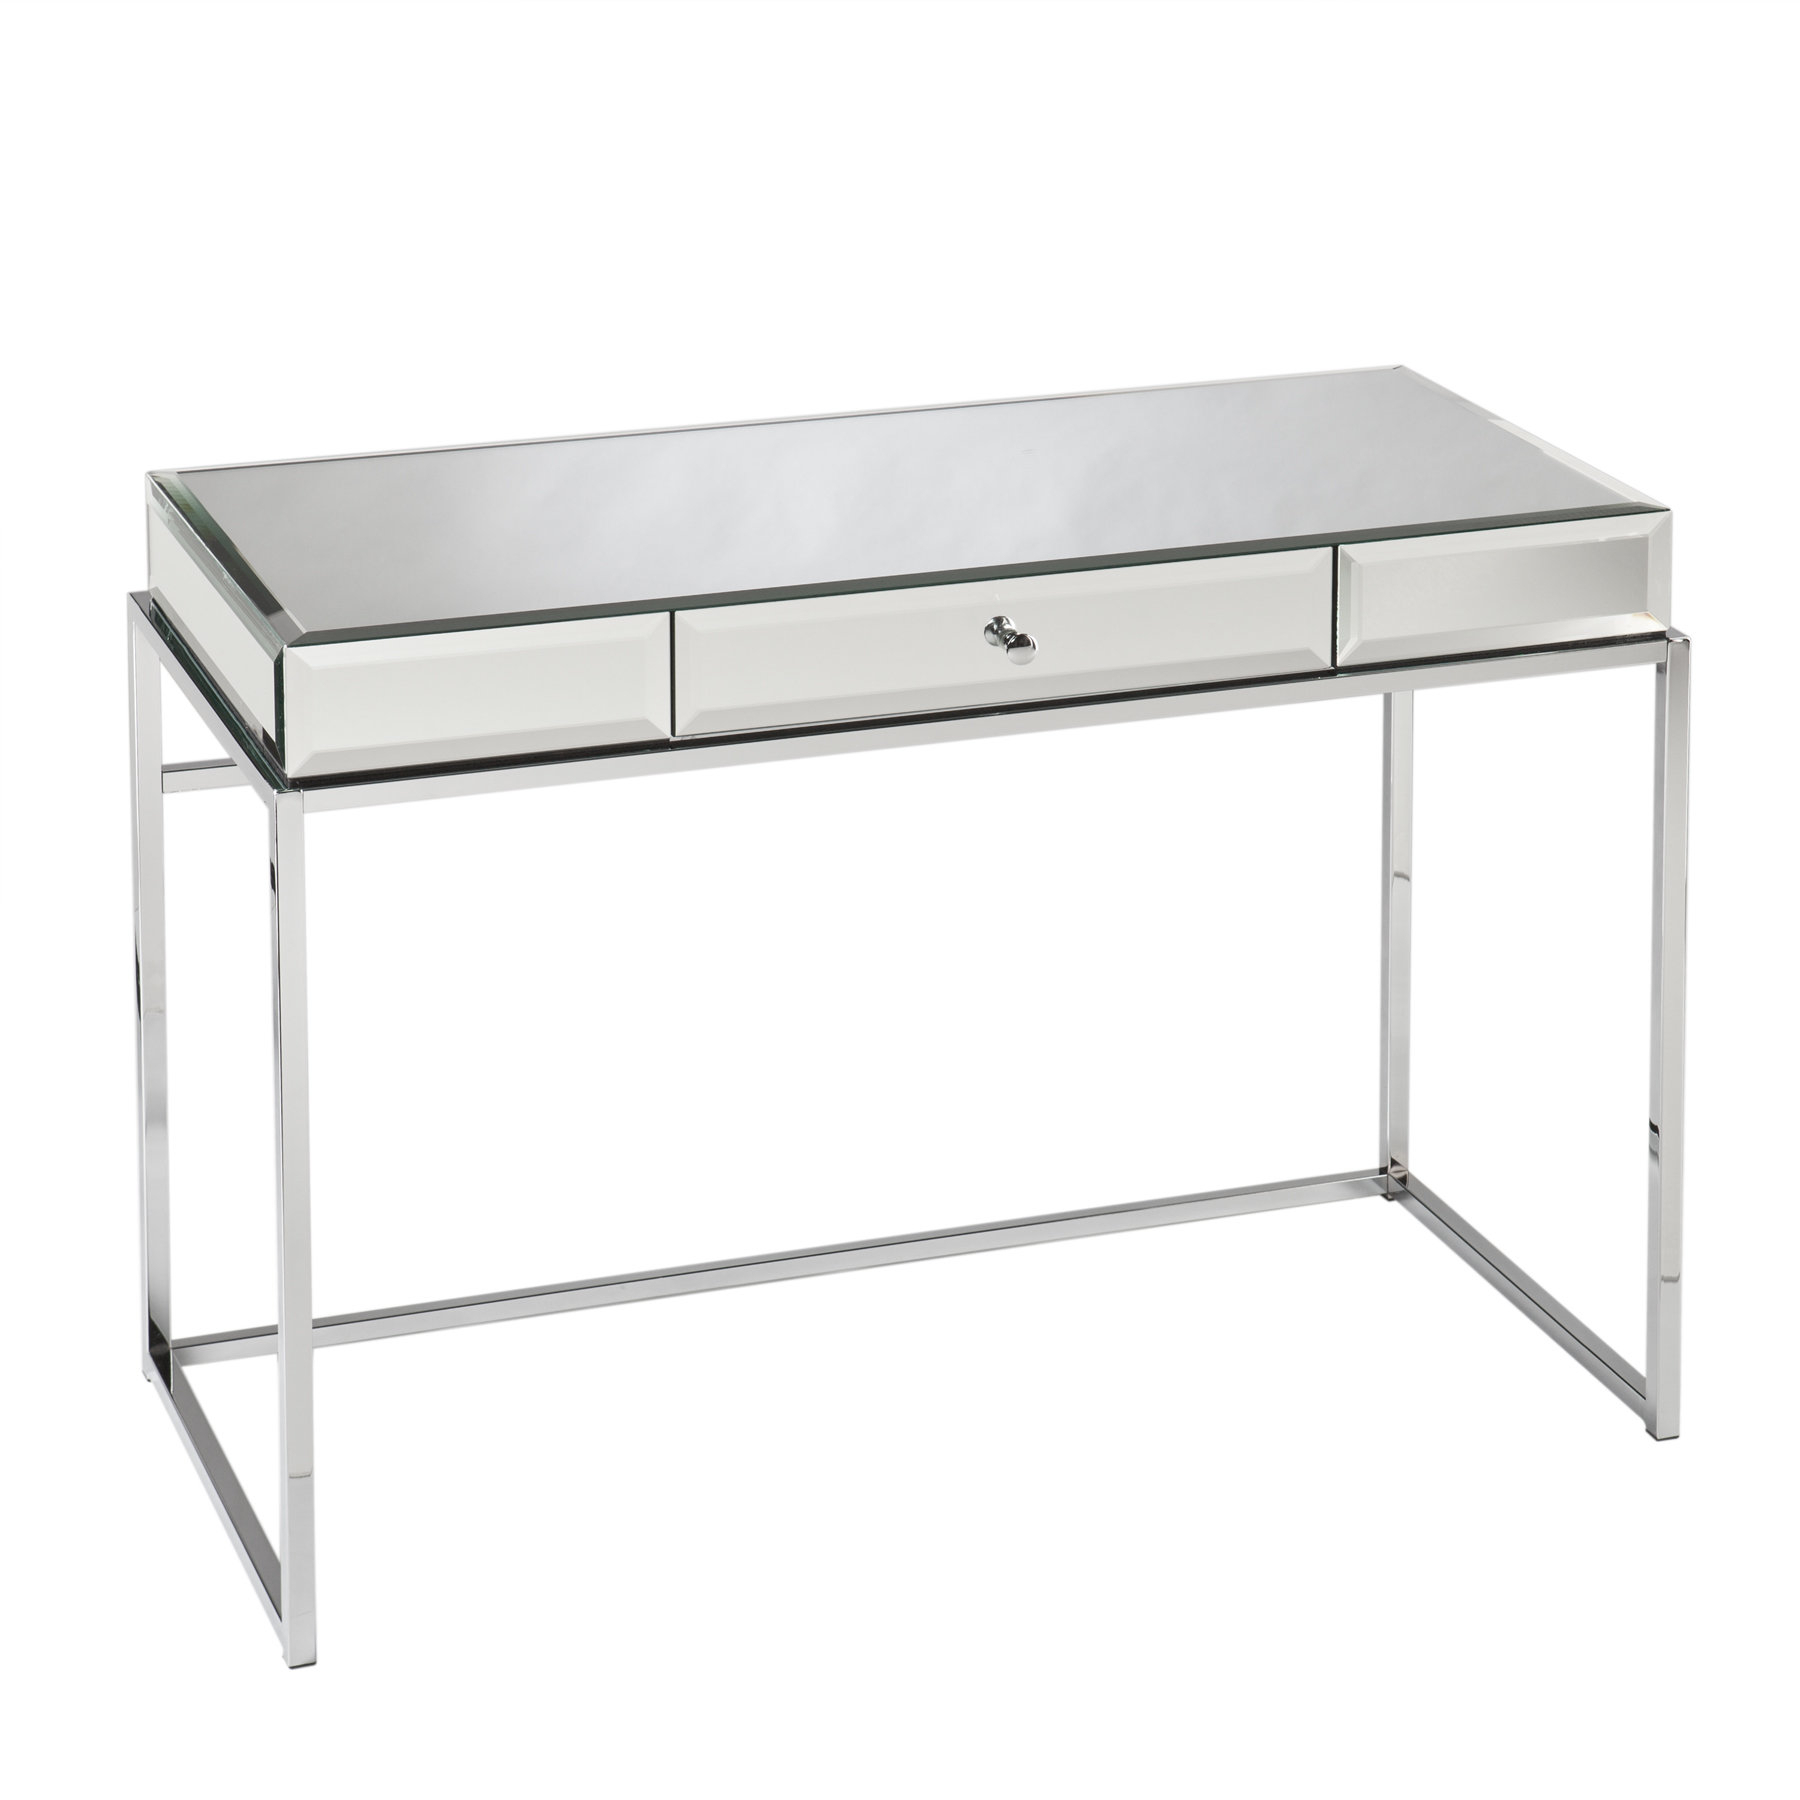 Alvis 1 Drawer Writing Desk for Alvis Traditional Metal Wall Decor (Image 3 of 30)